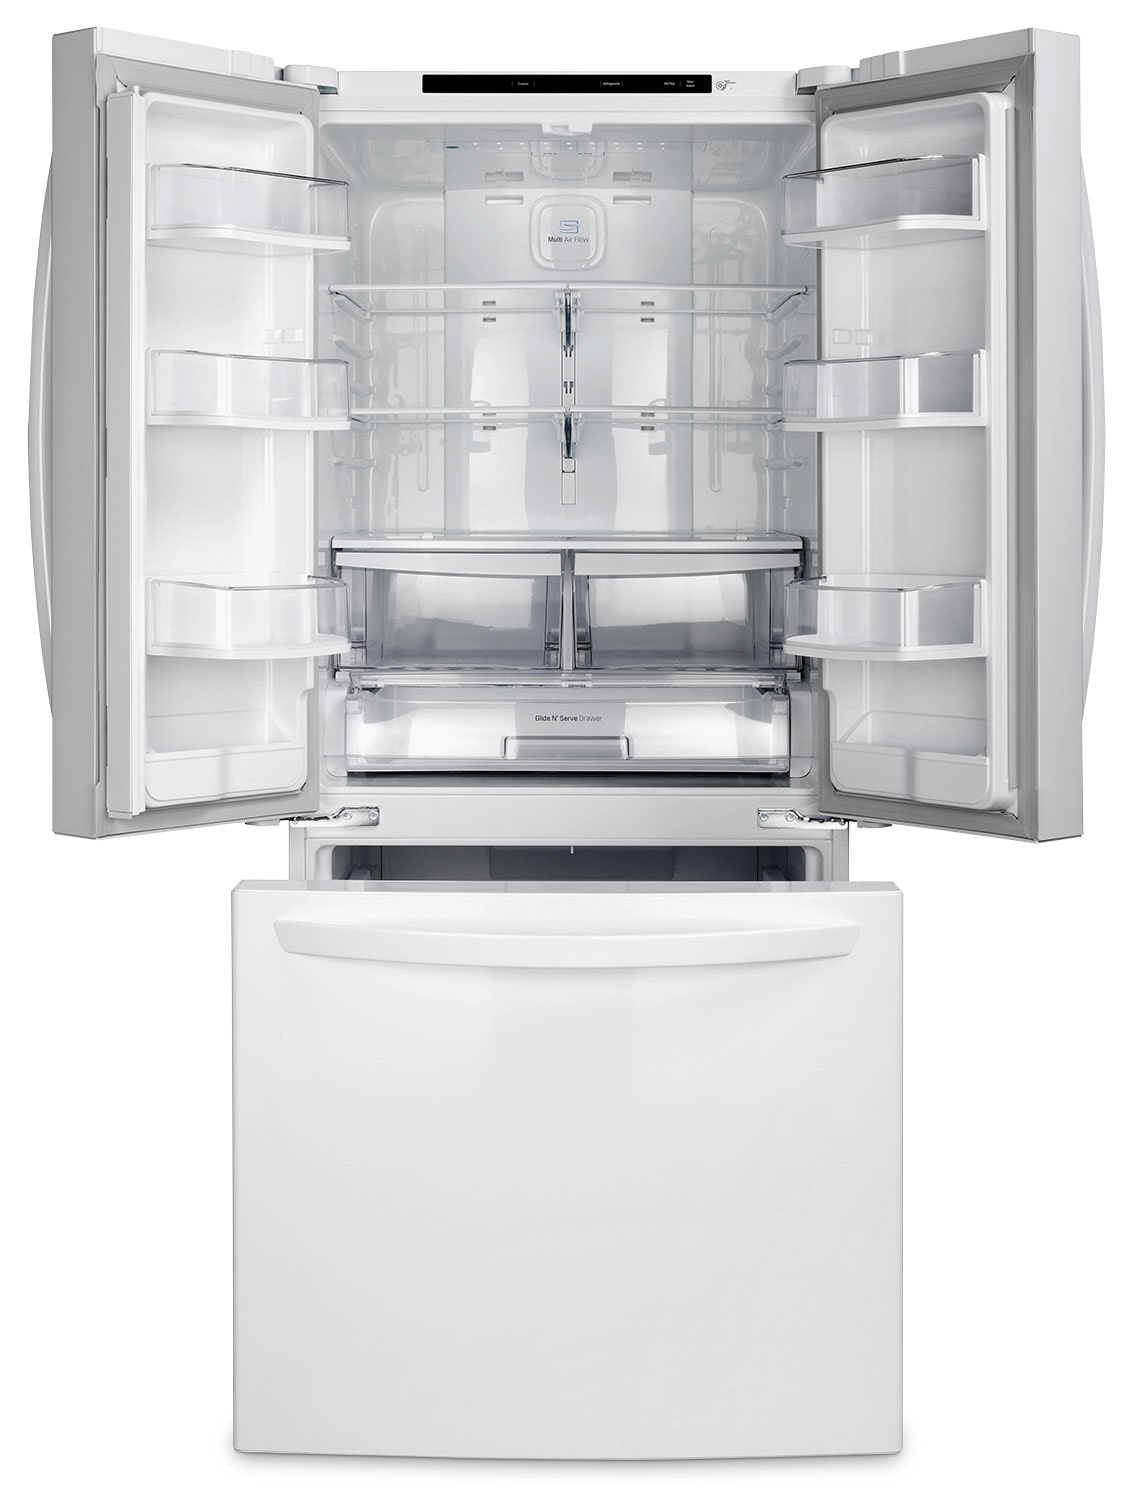 22 French Tip Nail Art Designs Ideas: LG 22 Cu. Ft. French-Door Refrigerator – LFNS22520W